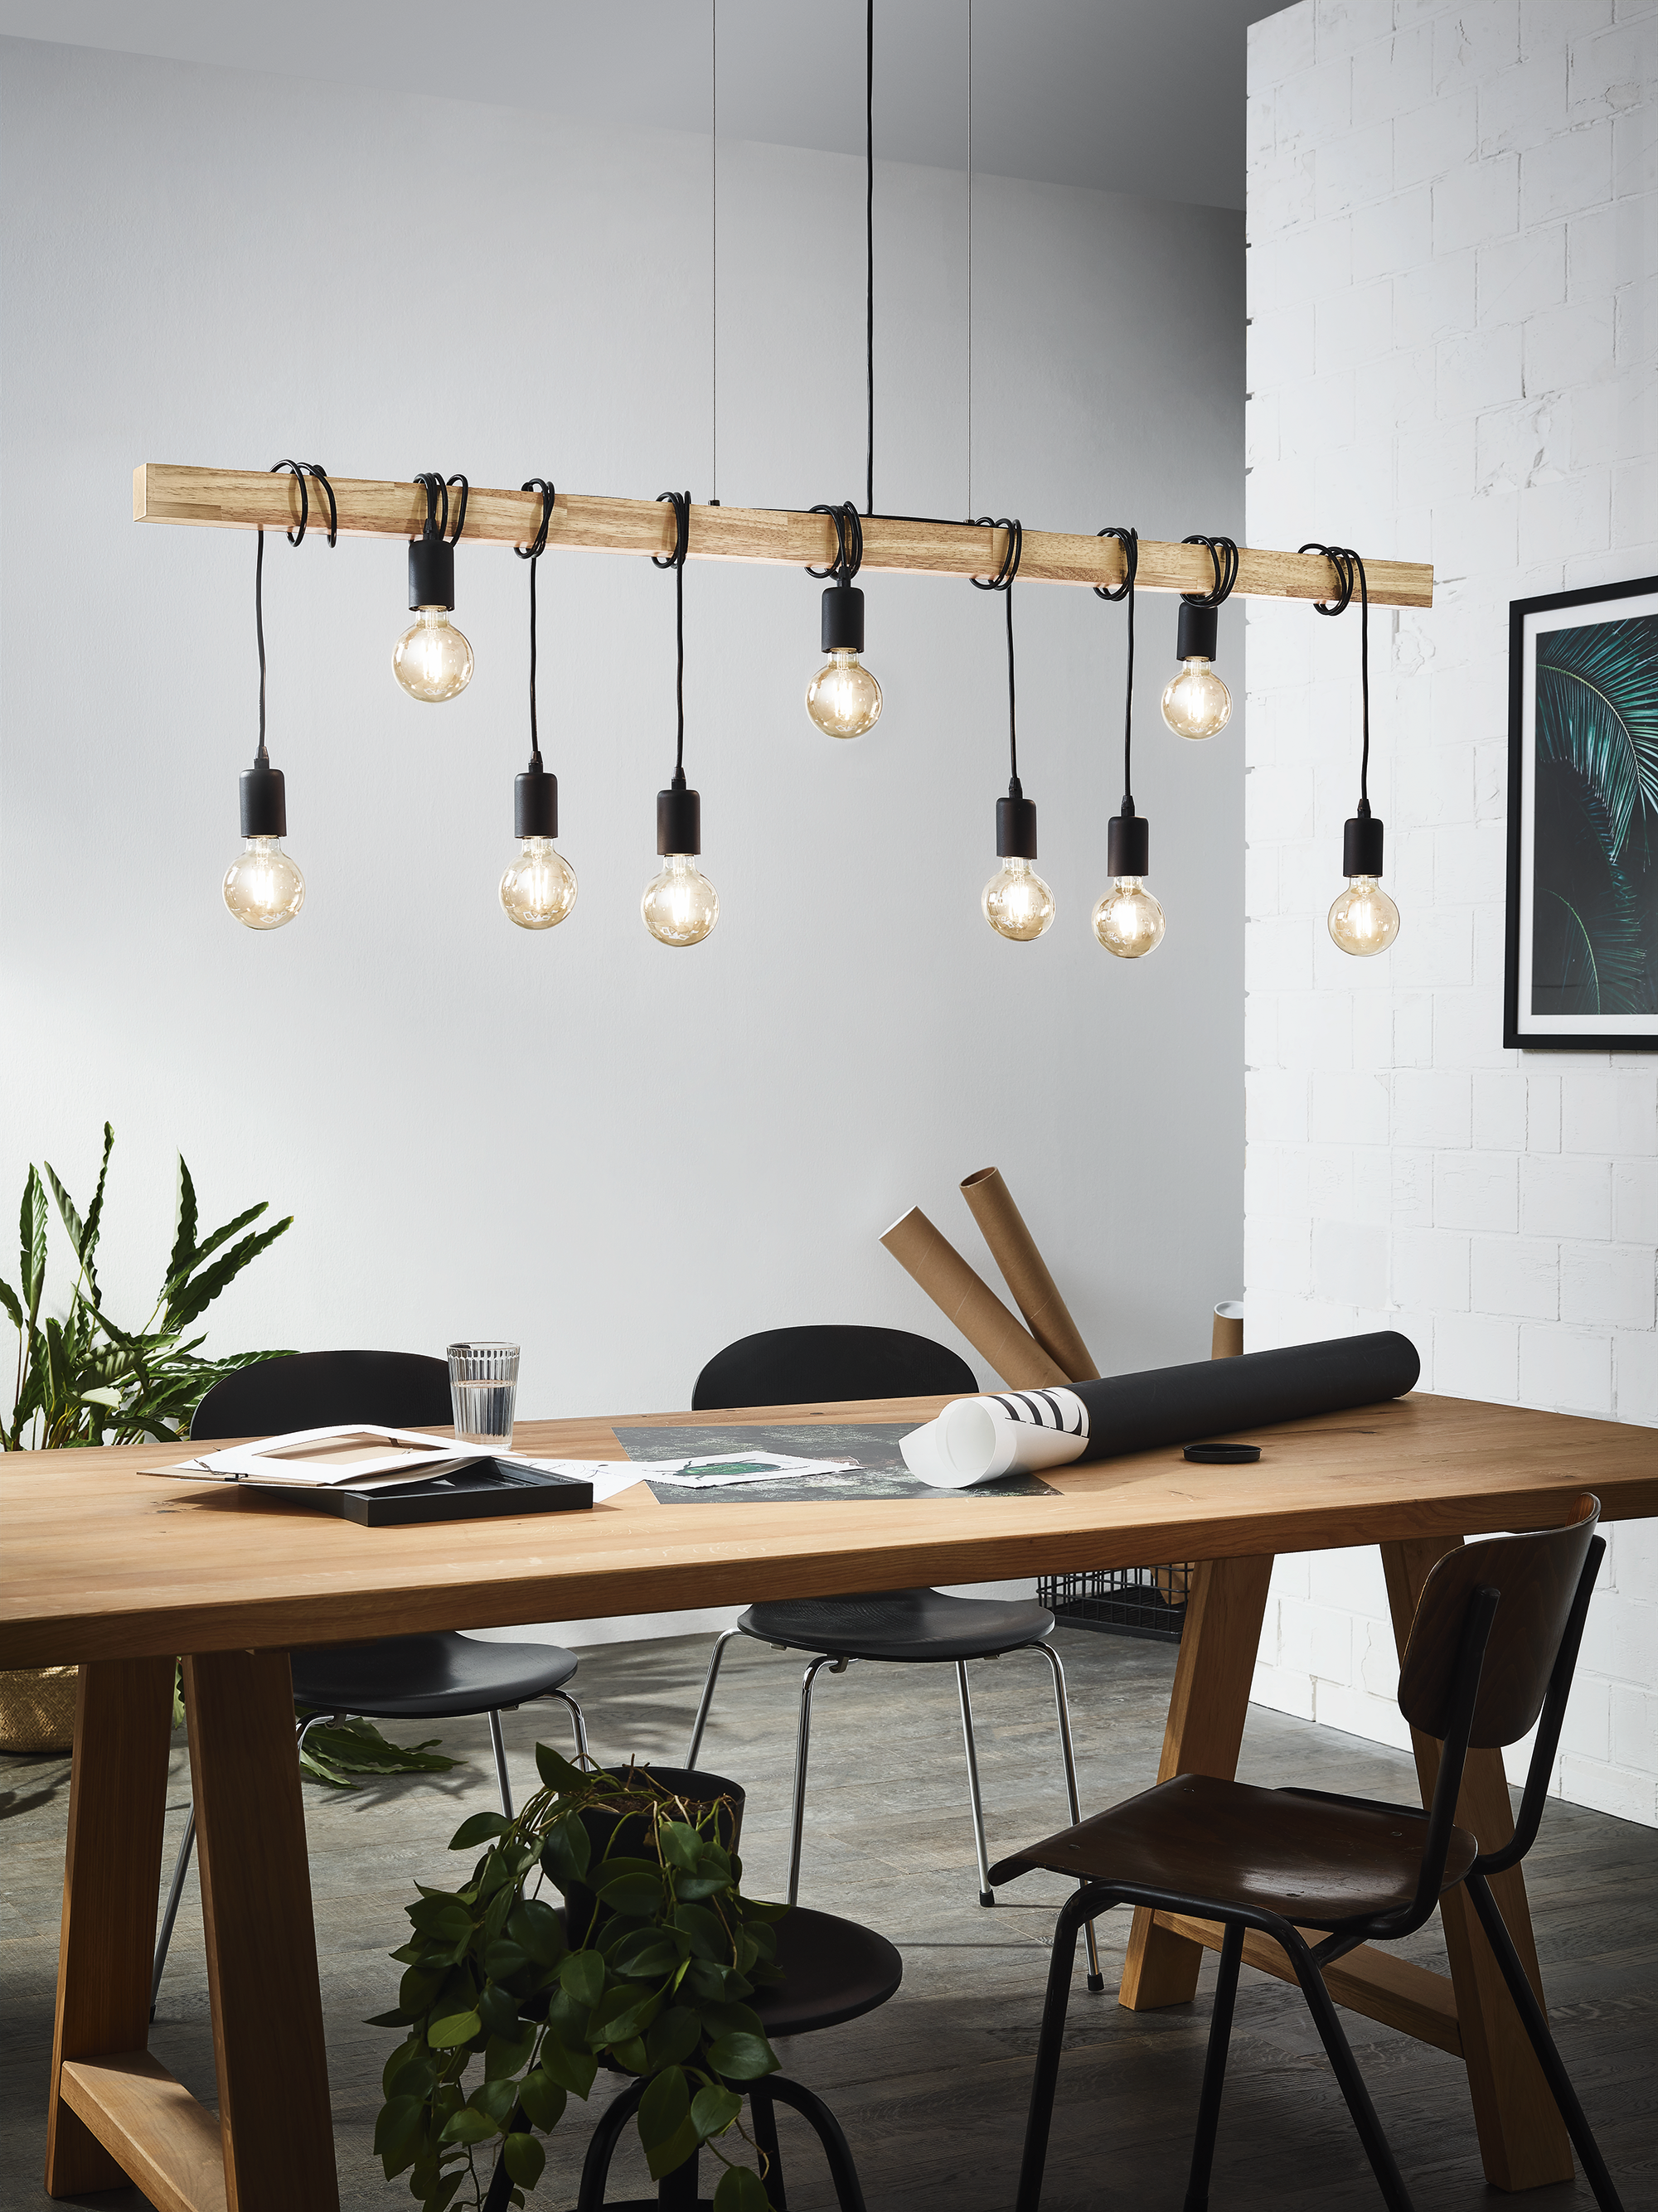 Just Hang Out Interior Lighting Vintage Pendant Lighting Eglo